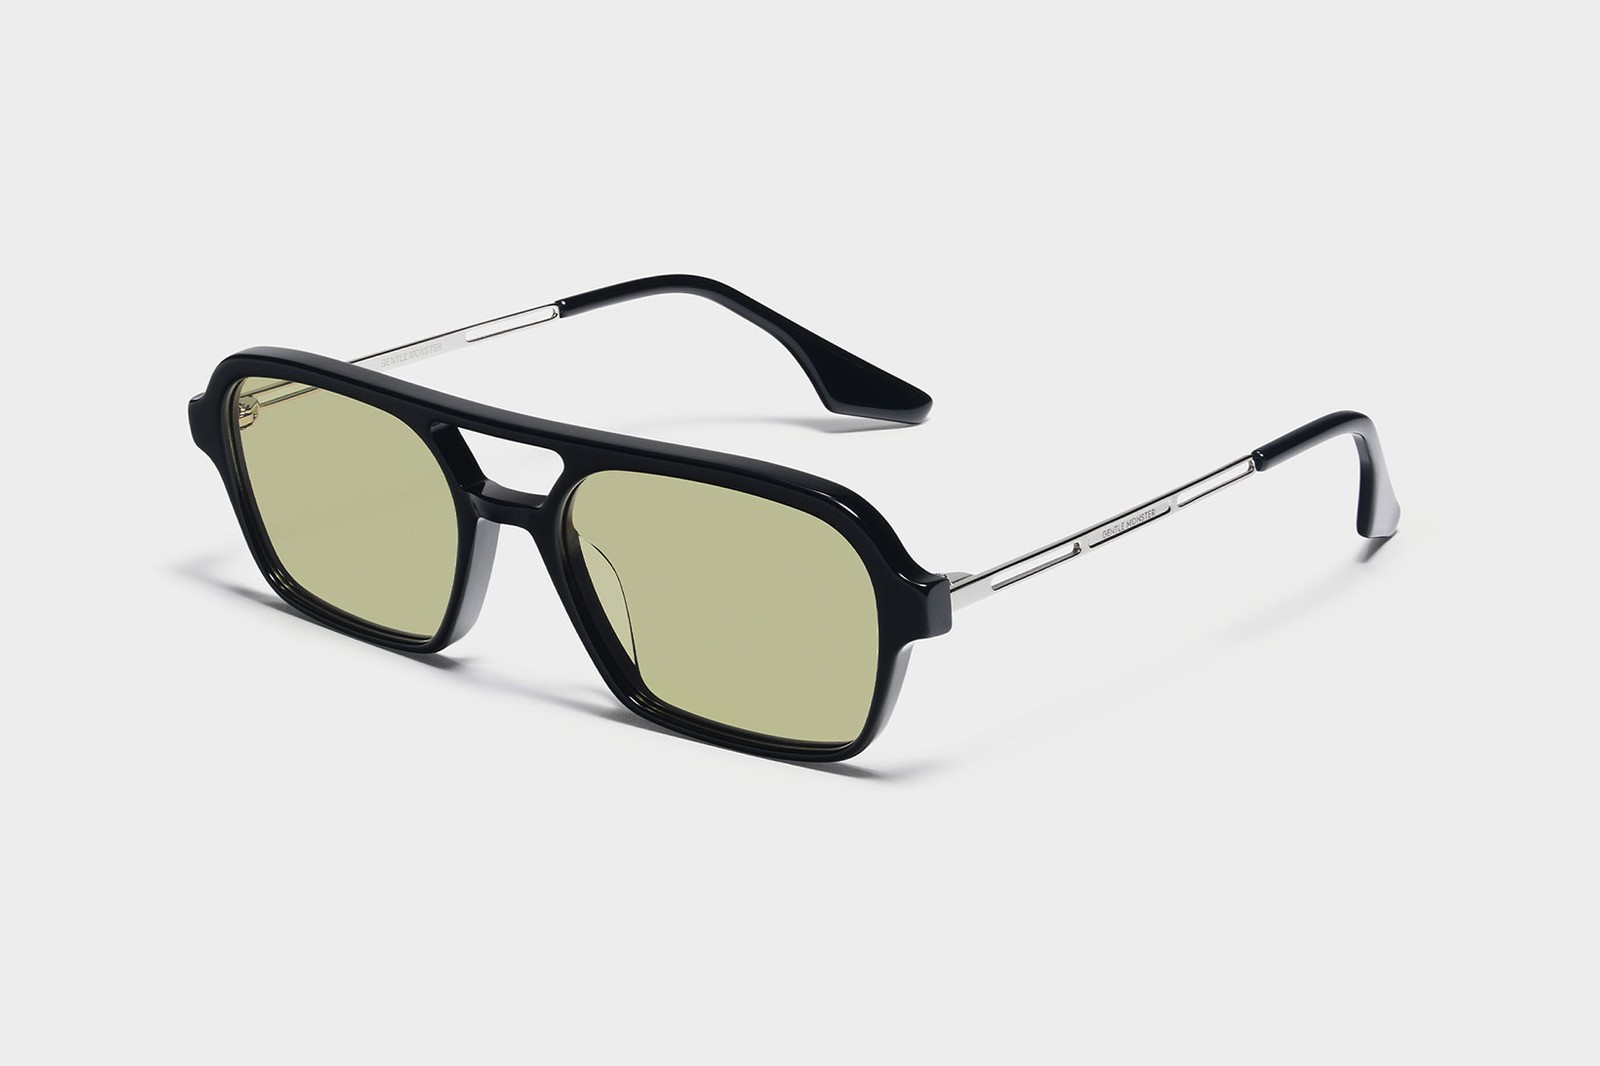 gentle monster void 2021 pre-collection sunglasses shades futuristic tinted rectangular frames release